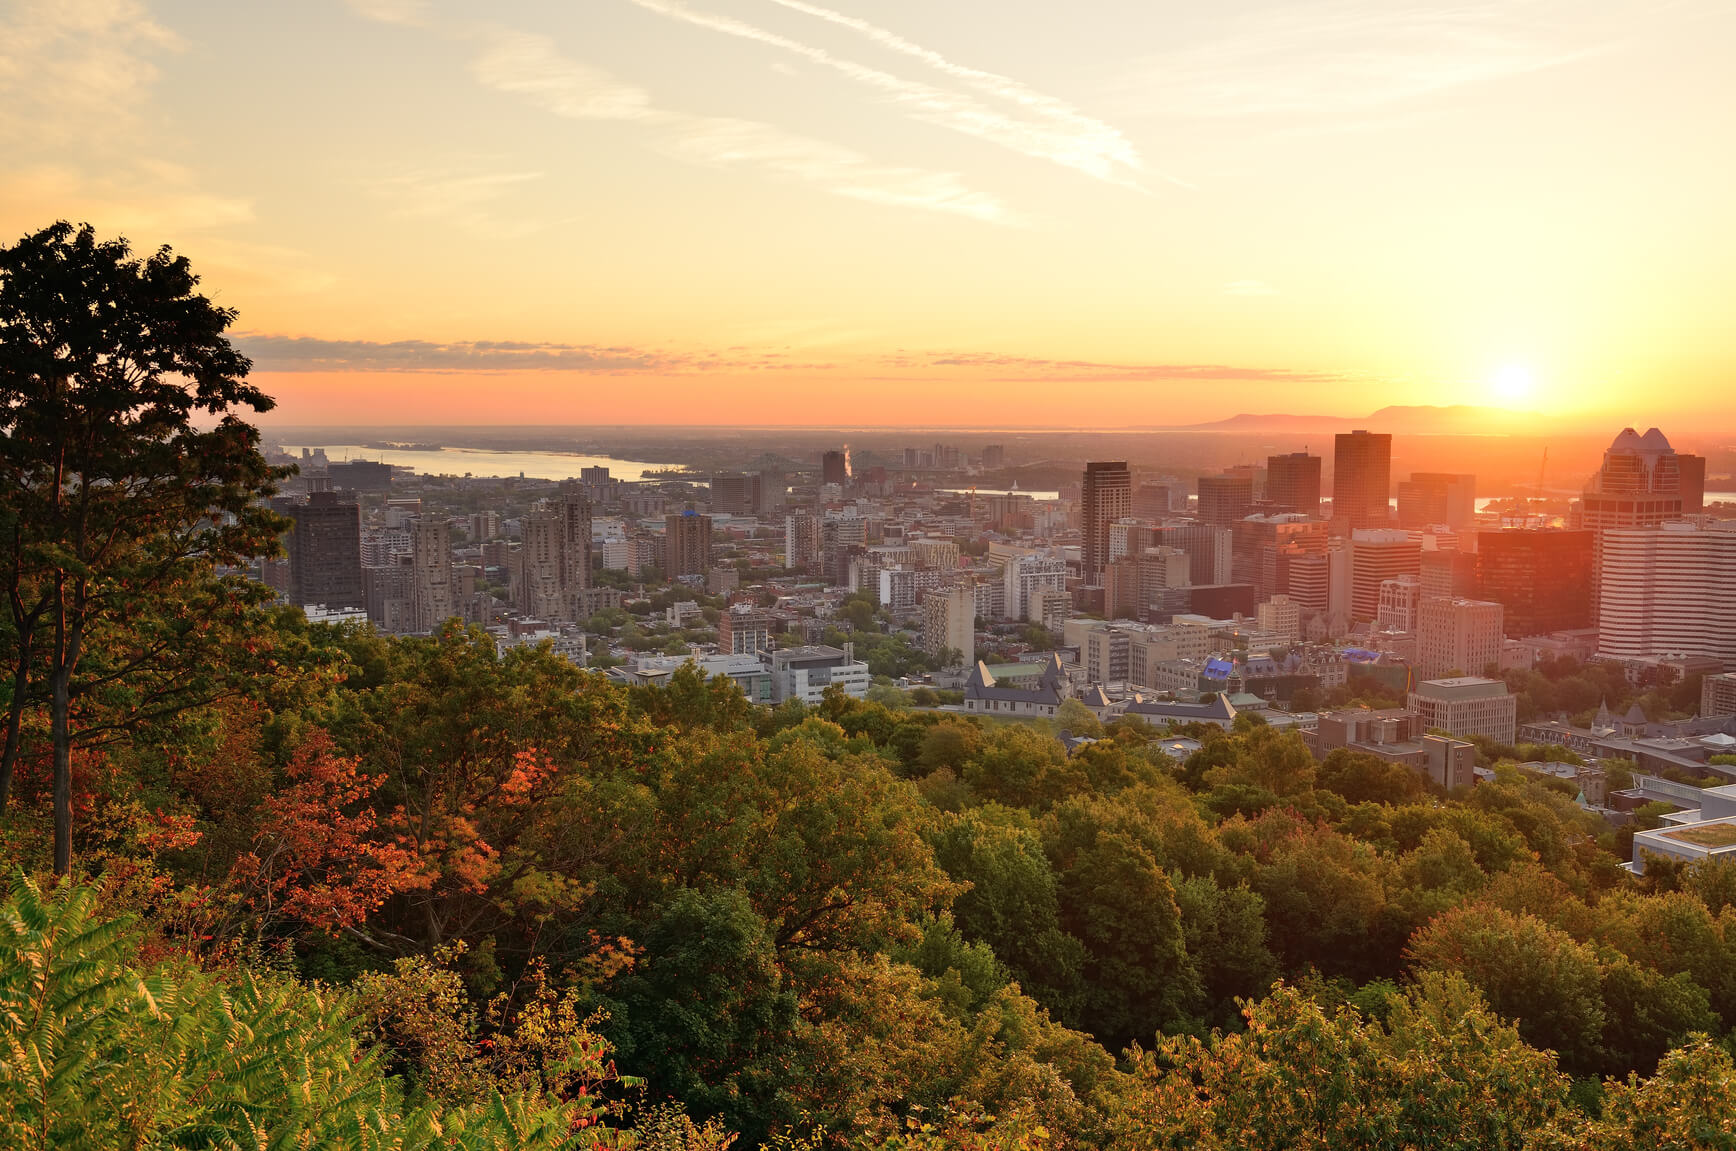 San Francisco to Montreal, Canada for only $283 roundtrip